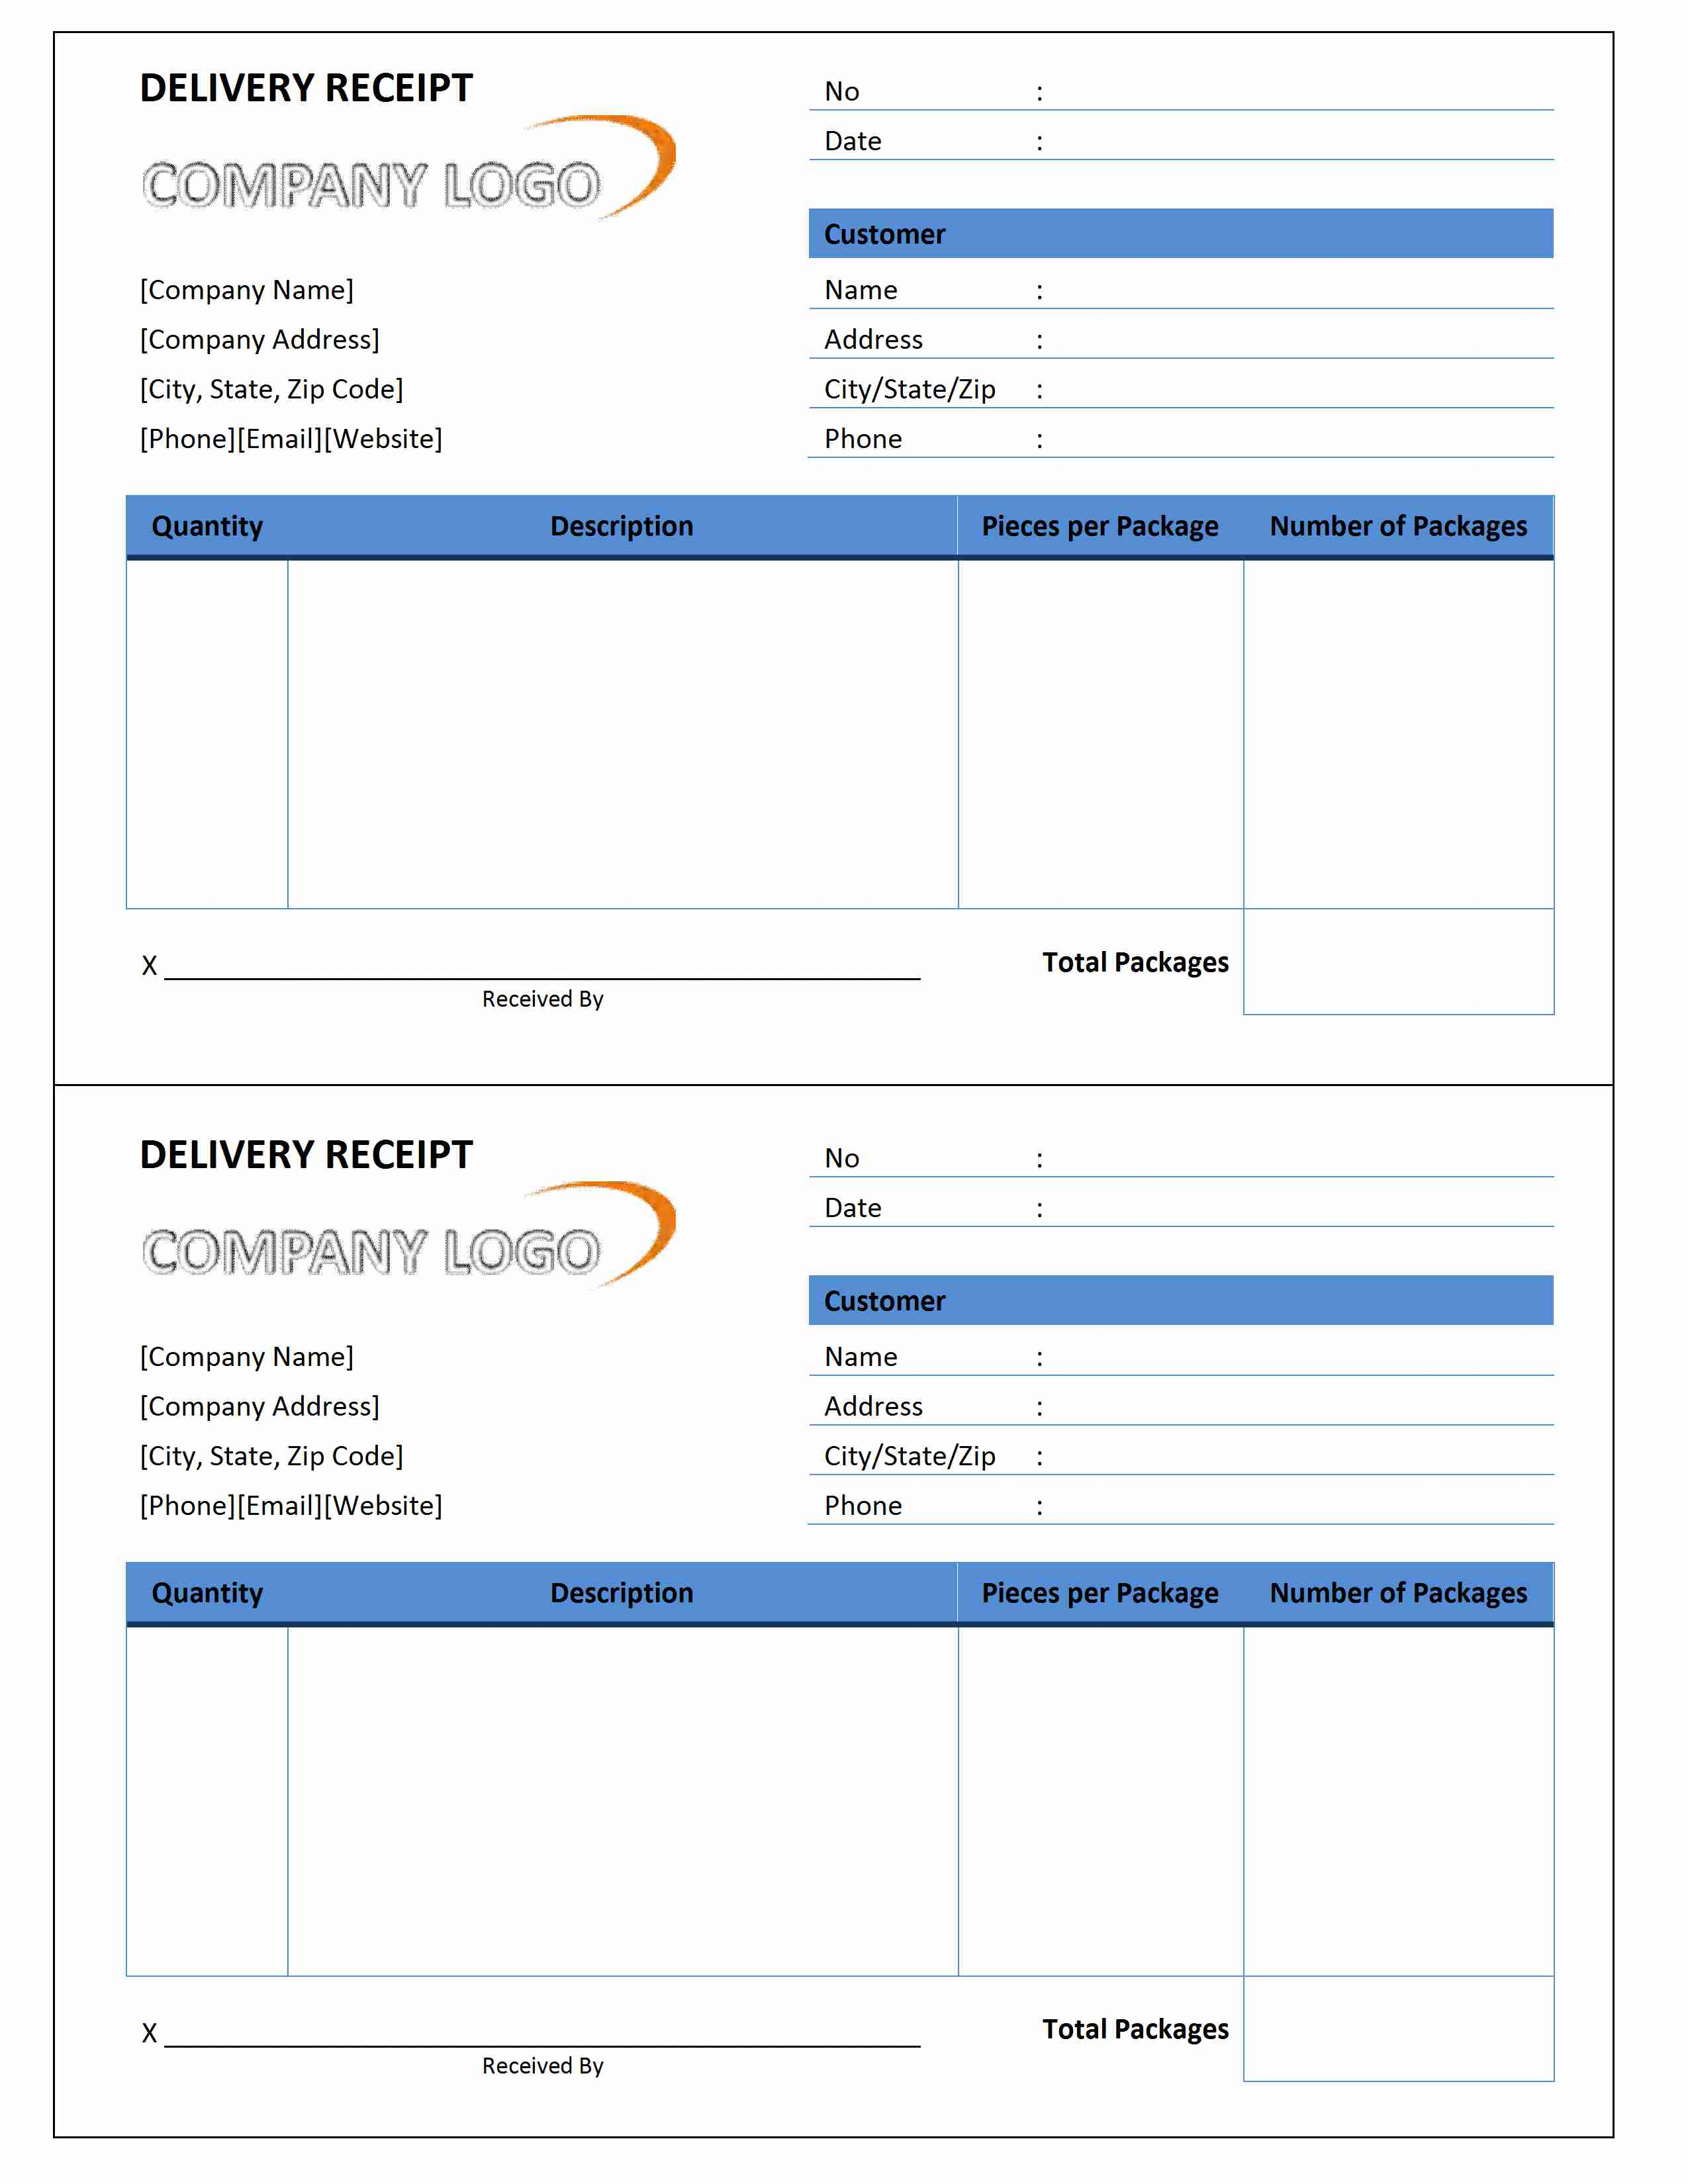 Delivery Receipt Template for Word